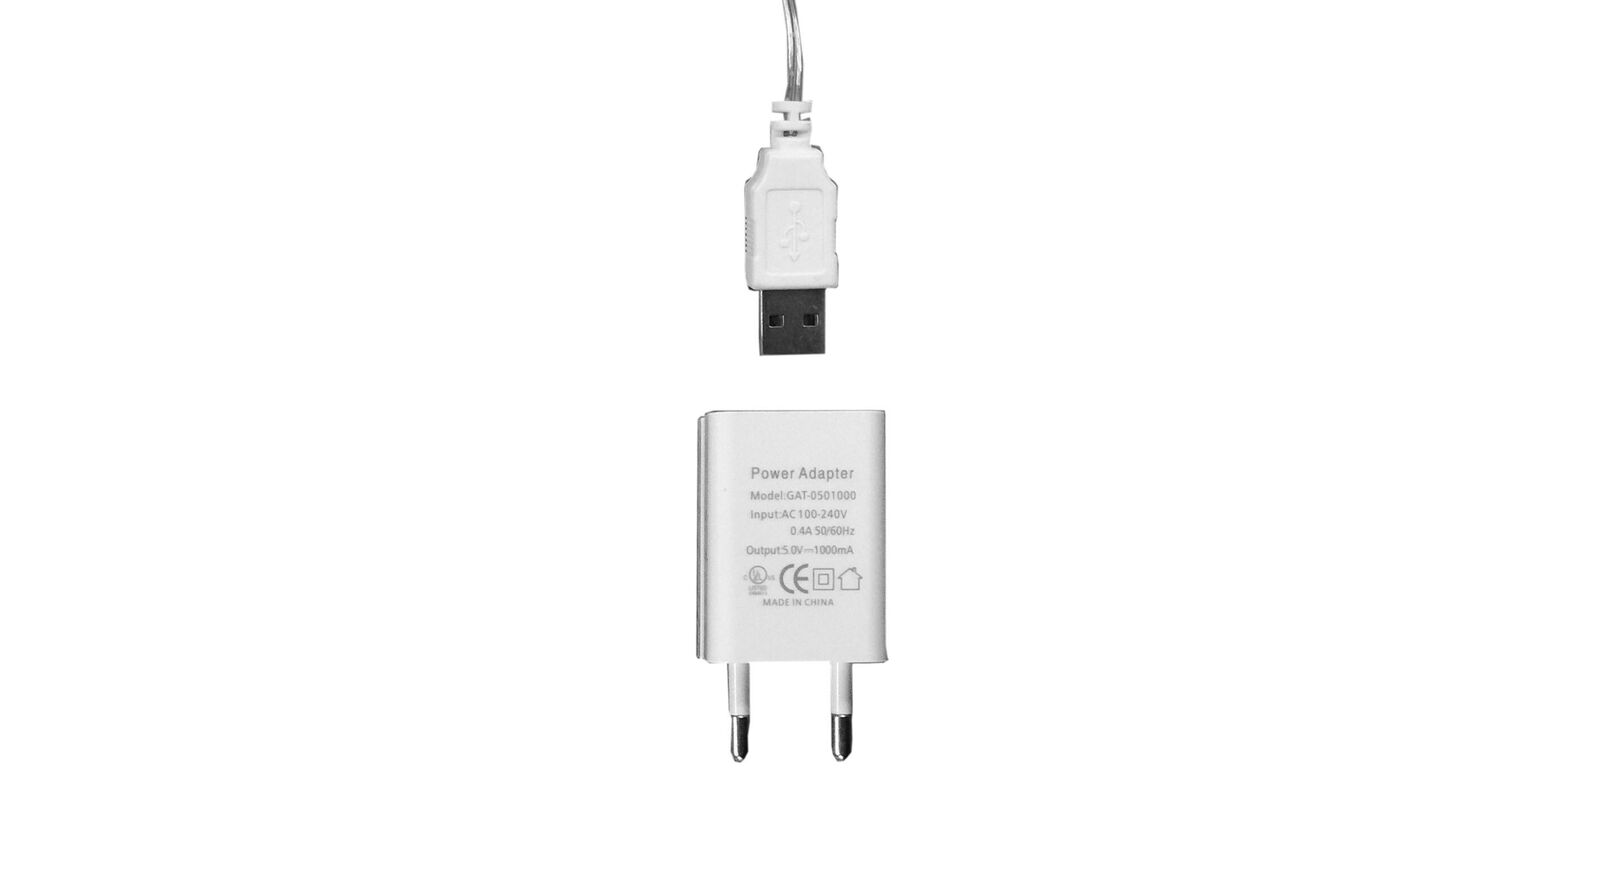 Stecker zur LIFETIME Eckablage Original mit LED